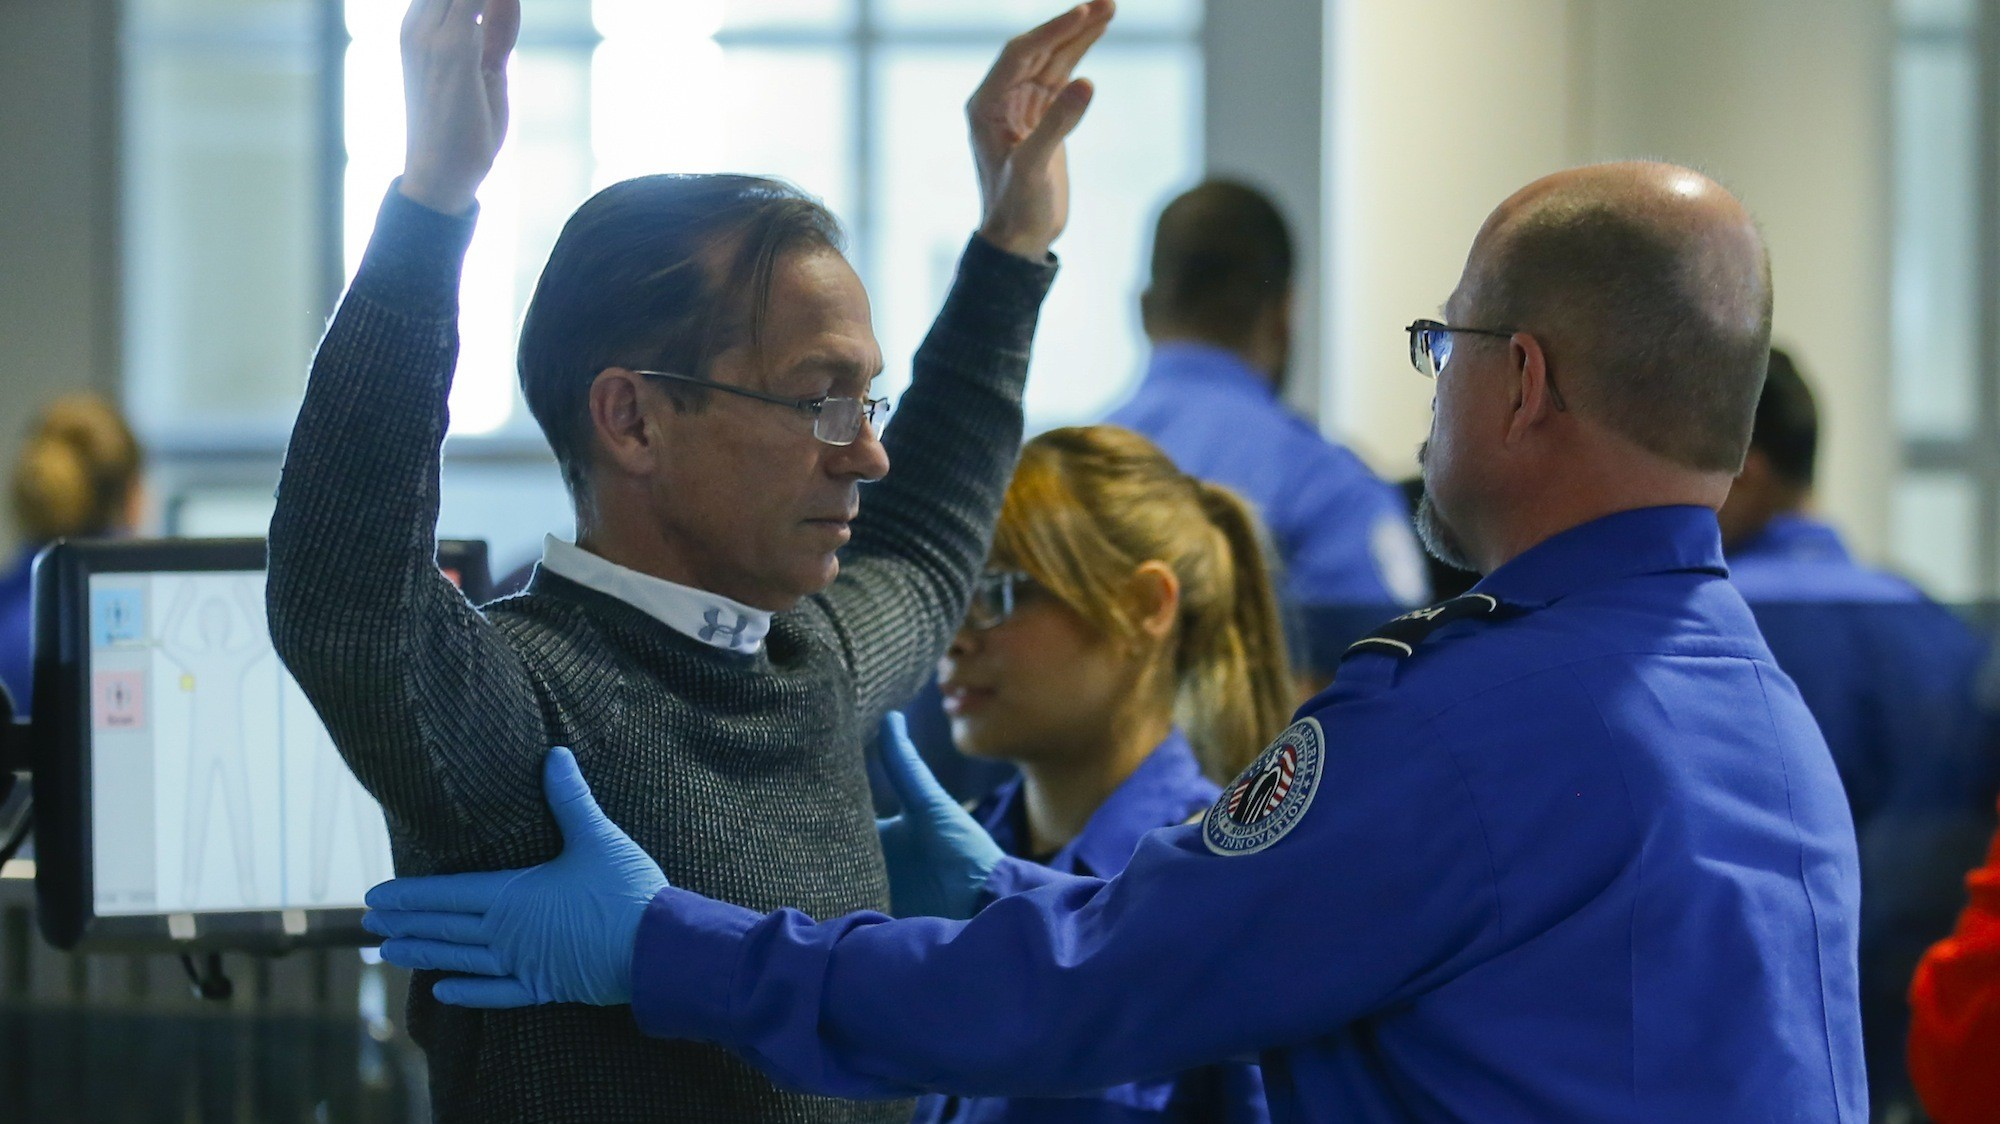 TSA Warns of Even Longer Lines at US Airports — But That Doesn't Mean Security Is Better